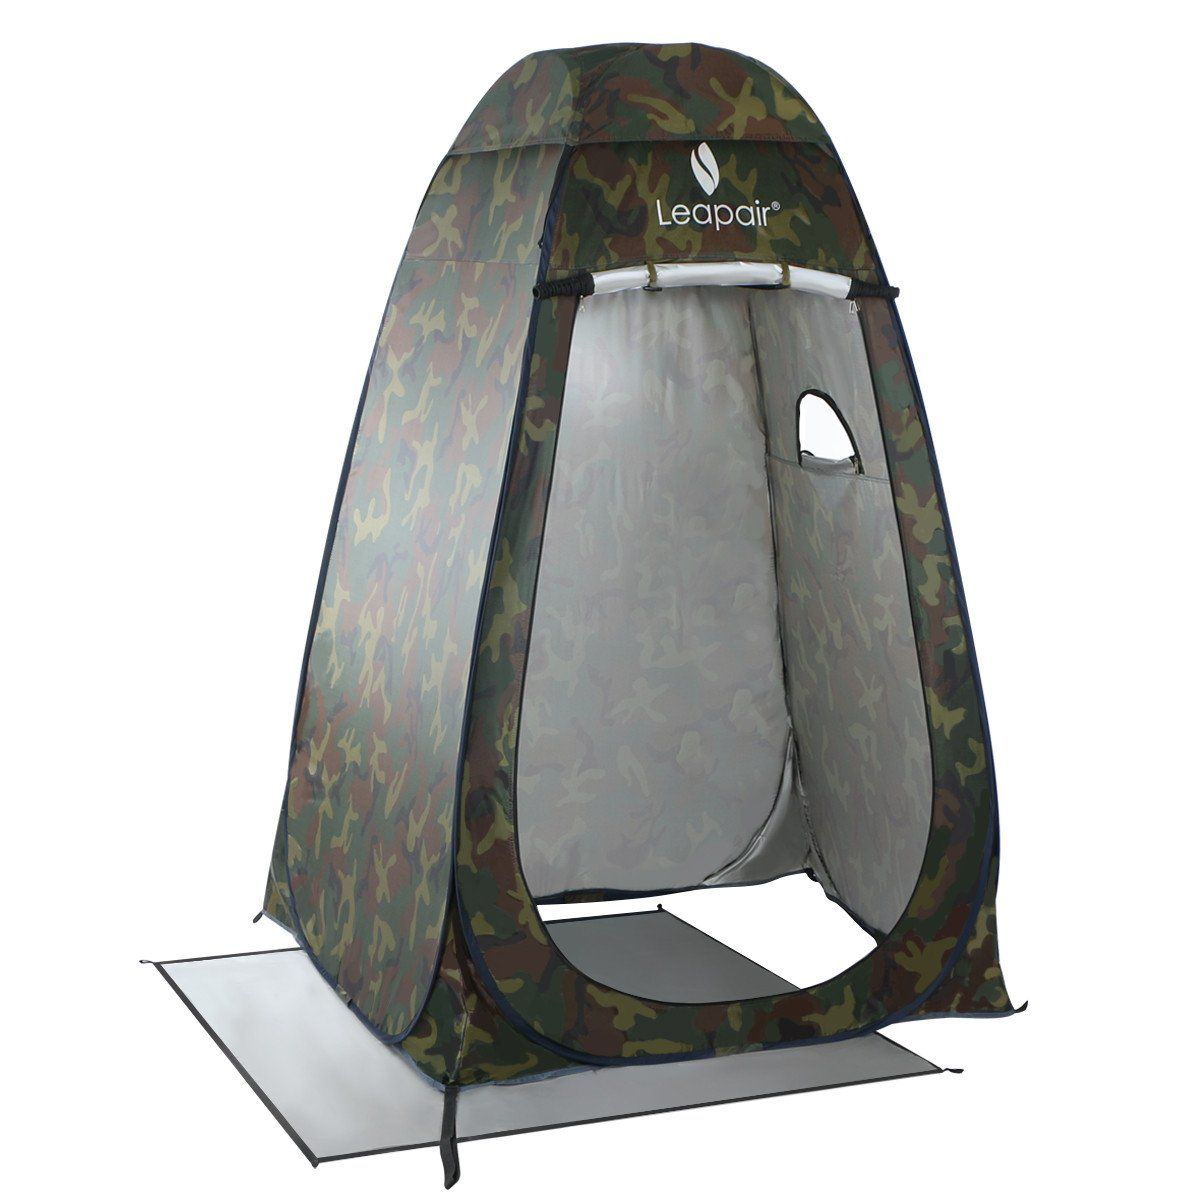 Leapair Instant Pop Up Privacy Tent | Camping shower, Tent